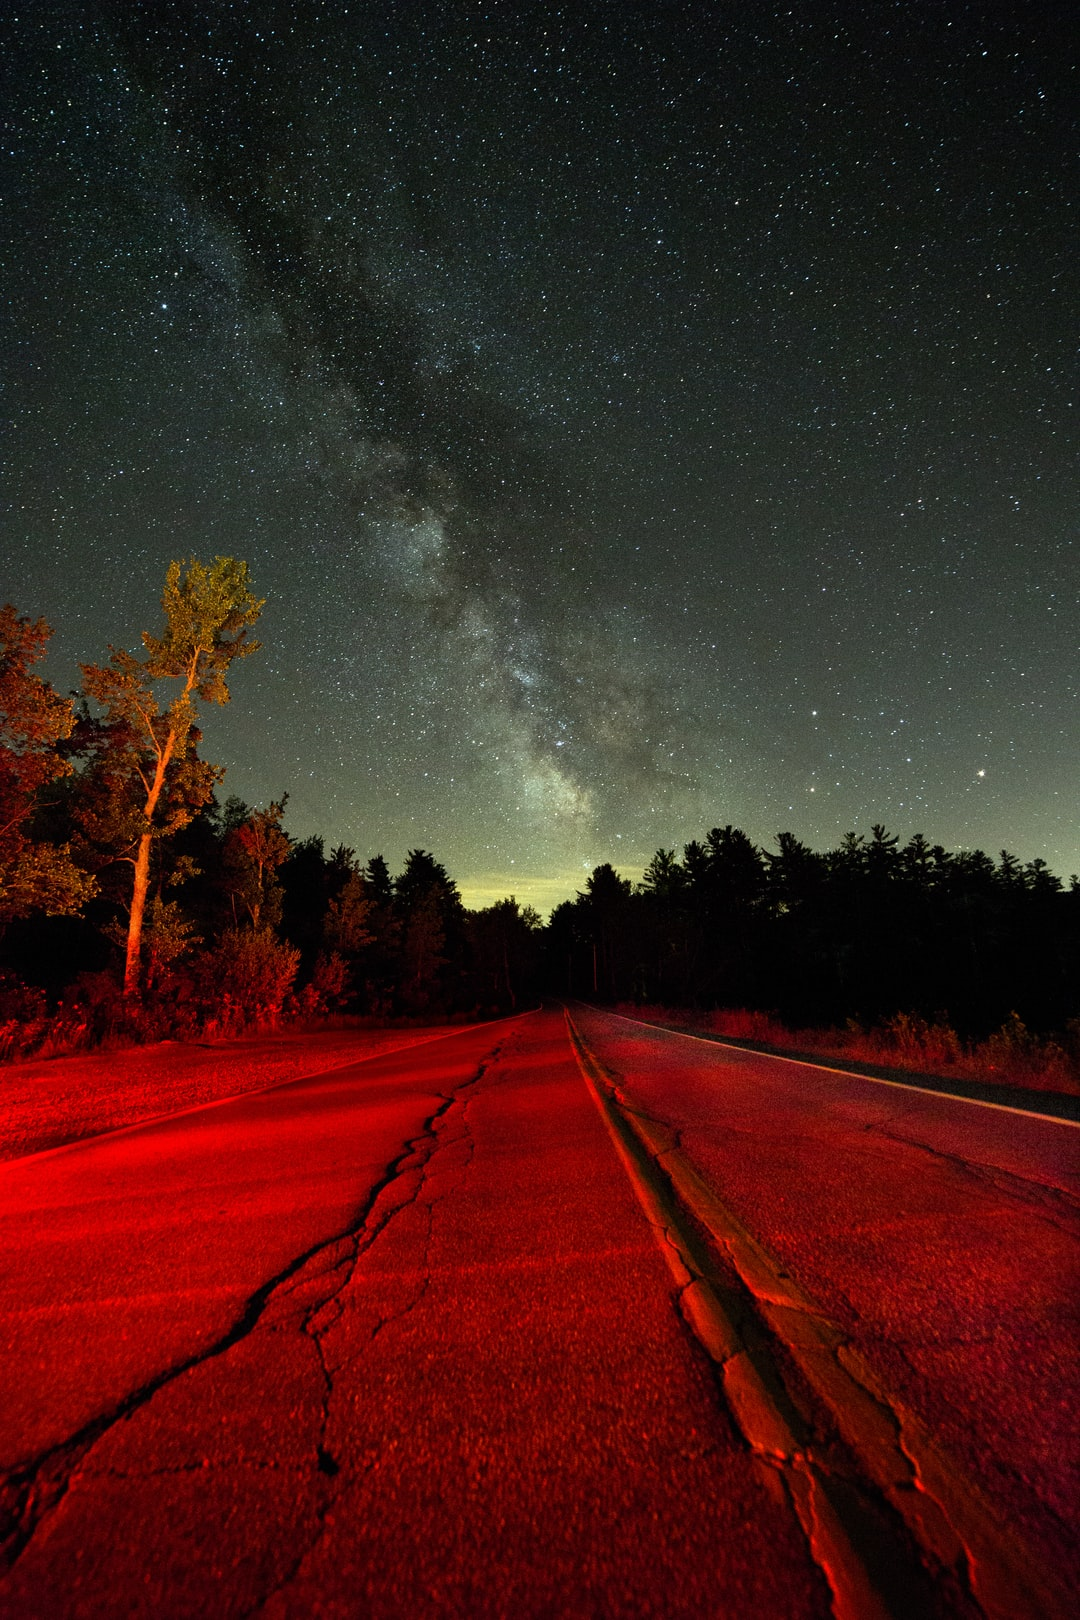 Most nights, I'm spending time with family or working extra hours so it's not always easy to do a big photo adventure. This night, I grabbed the camera with no destination in mind and randomly pulled over to grab this shot of the Milky Way. The red on the ground is ambient light from the car's taillights.